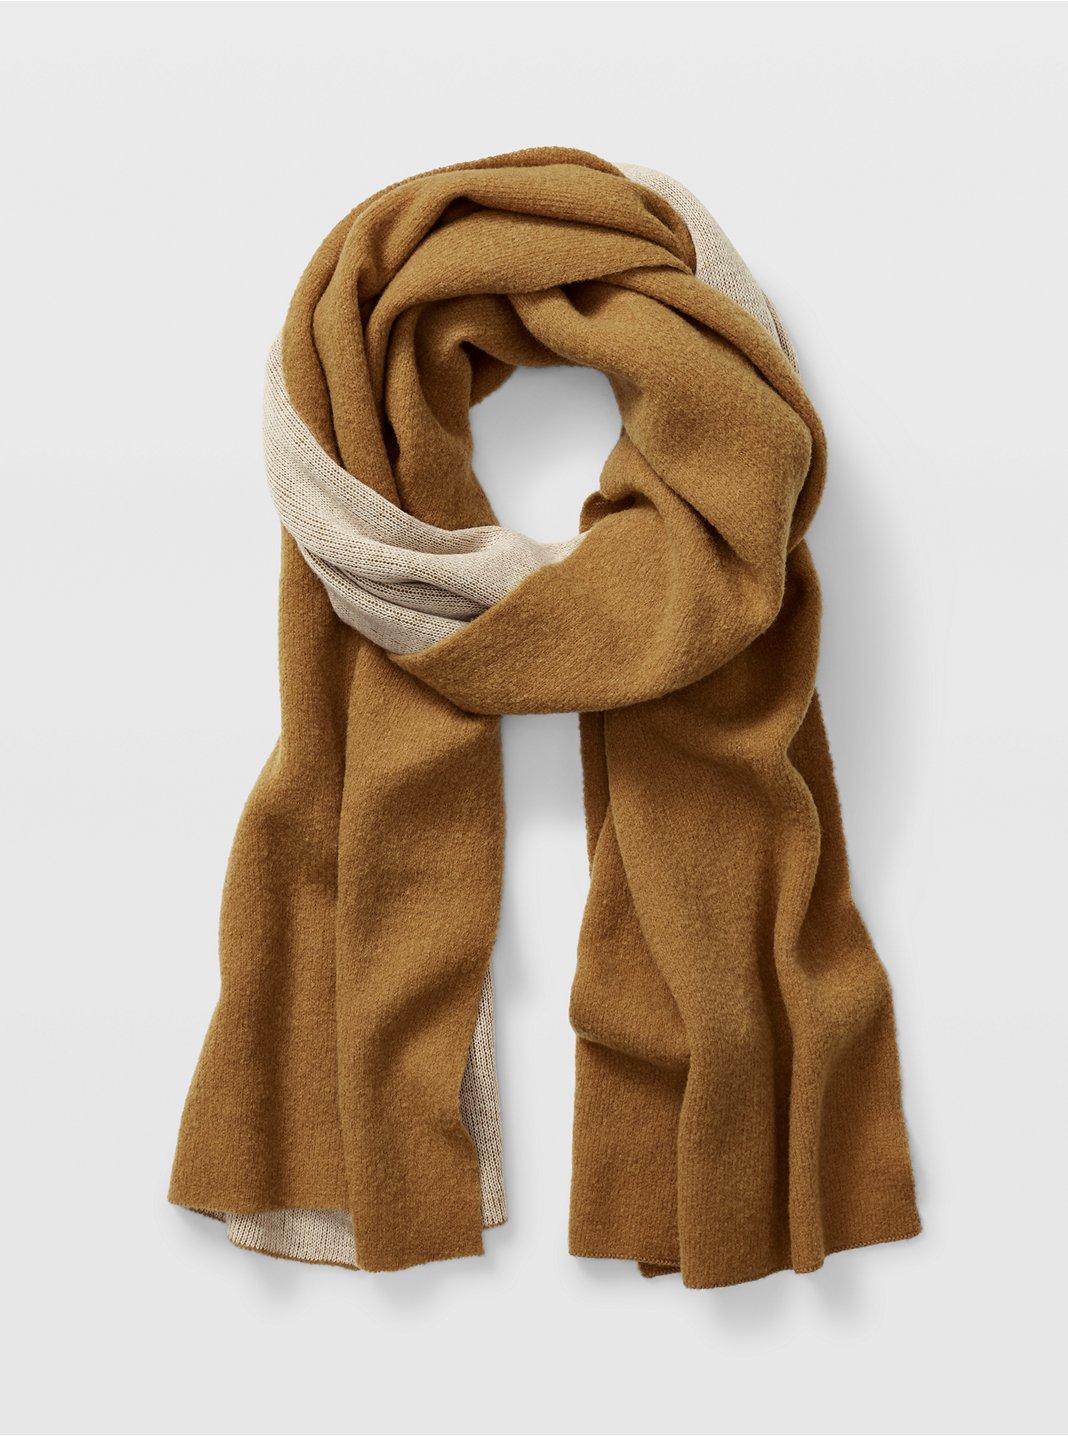 Veronica Boucle Scarf